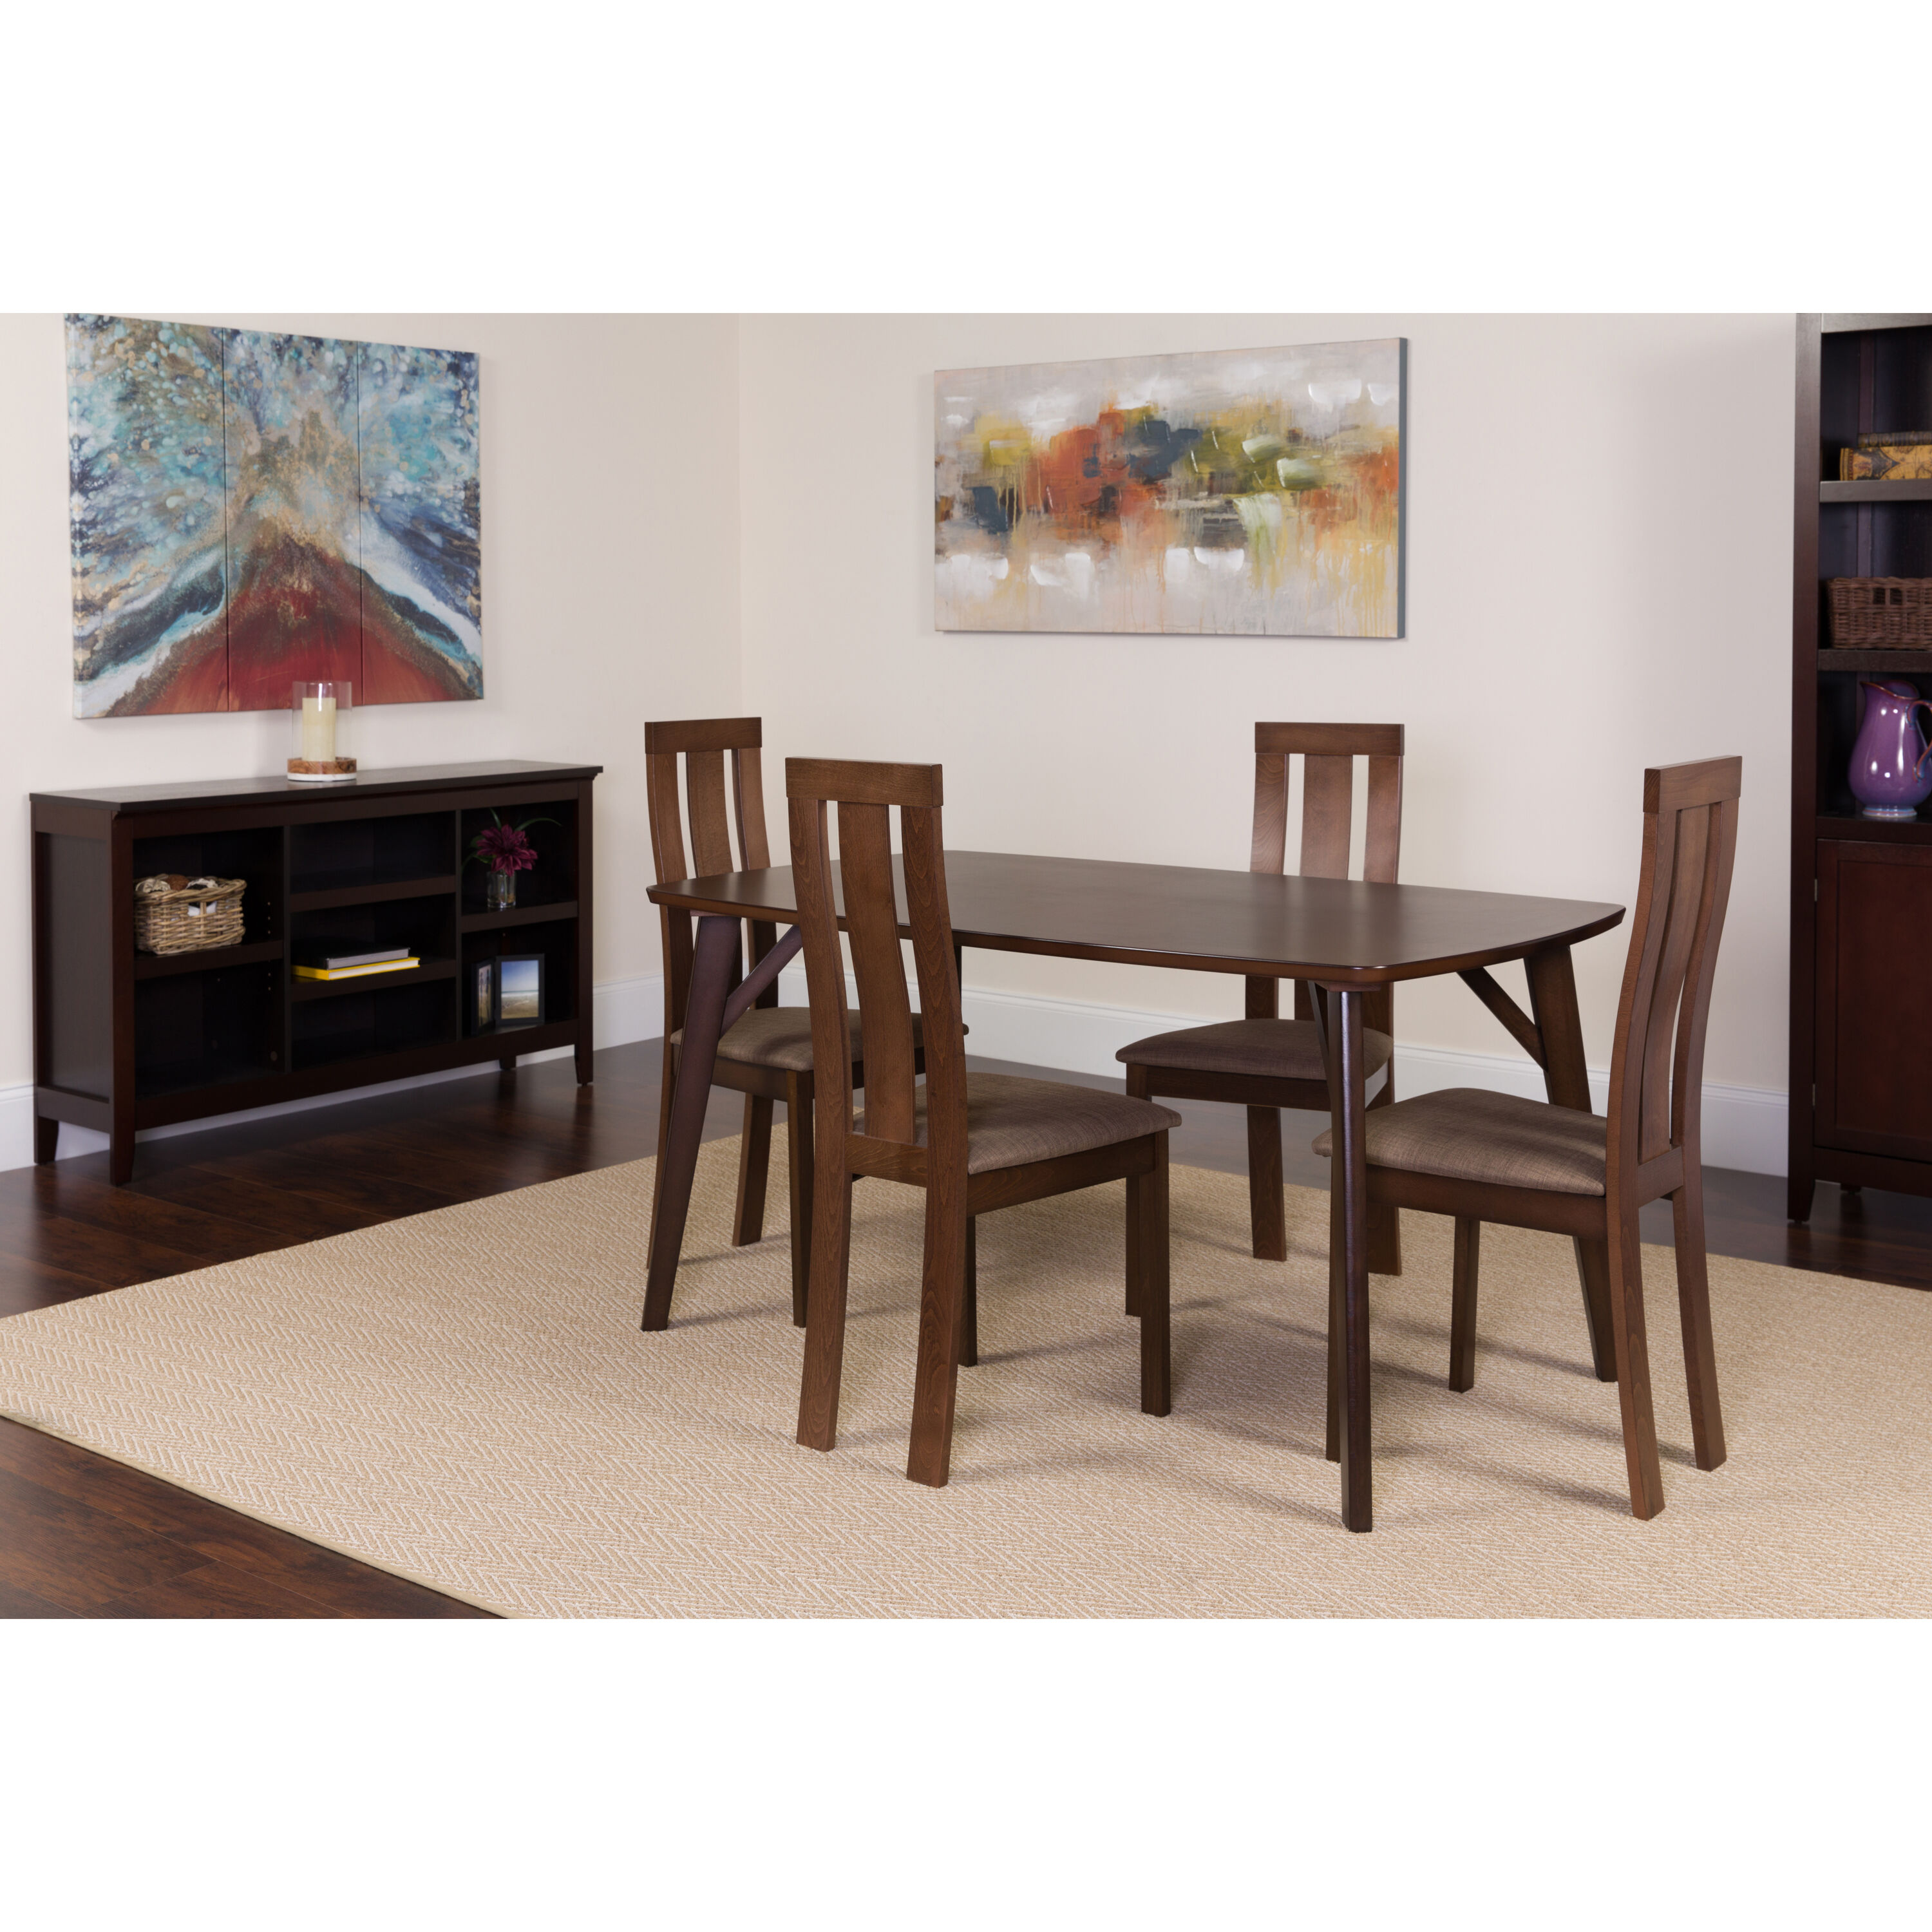 Exceptionnel ... Our Pullman 5 Piece Espresso Wood Dining Table Set With Vertical Wide  Slat Back Wood Dining ...